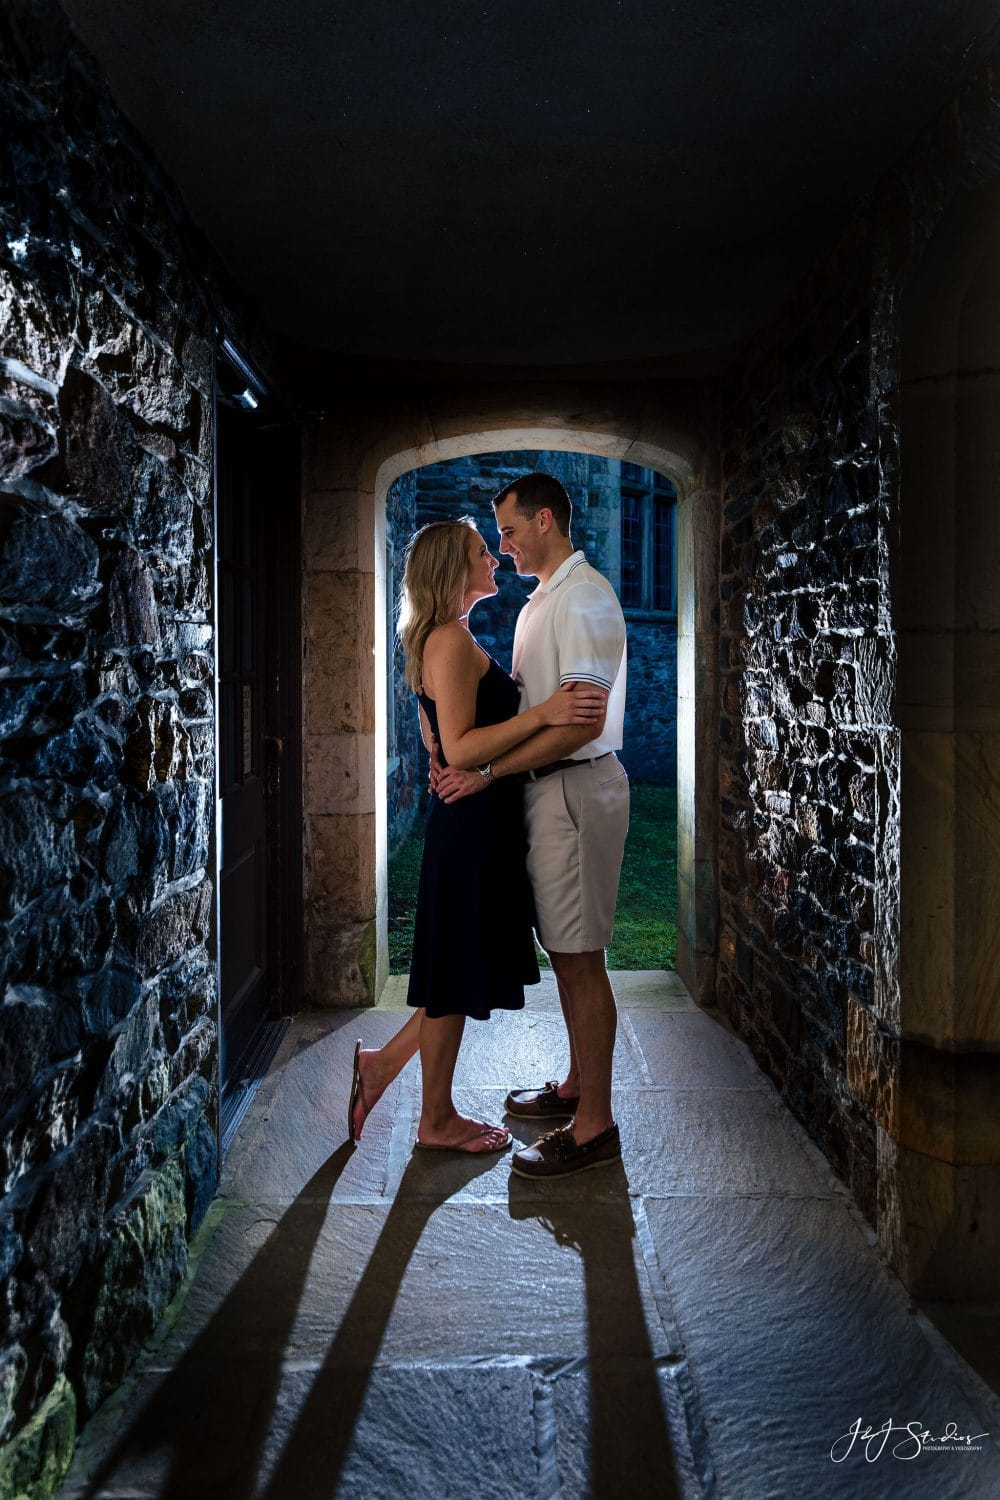 Couple nightitime inside of the Hunting Hill Mansion Hunting Hill Mansion Engagement Shot By John Ryan